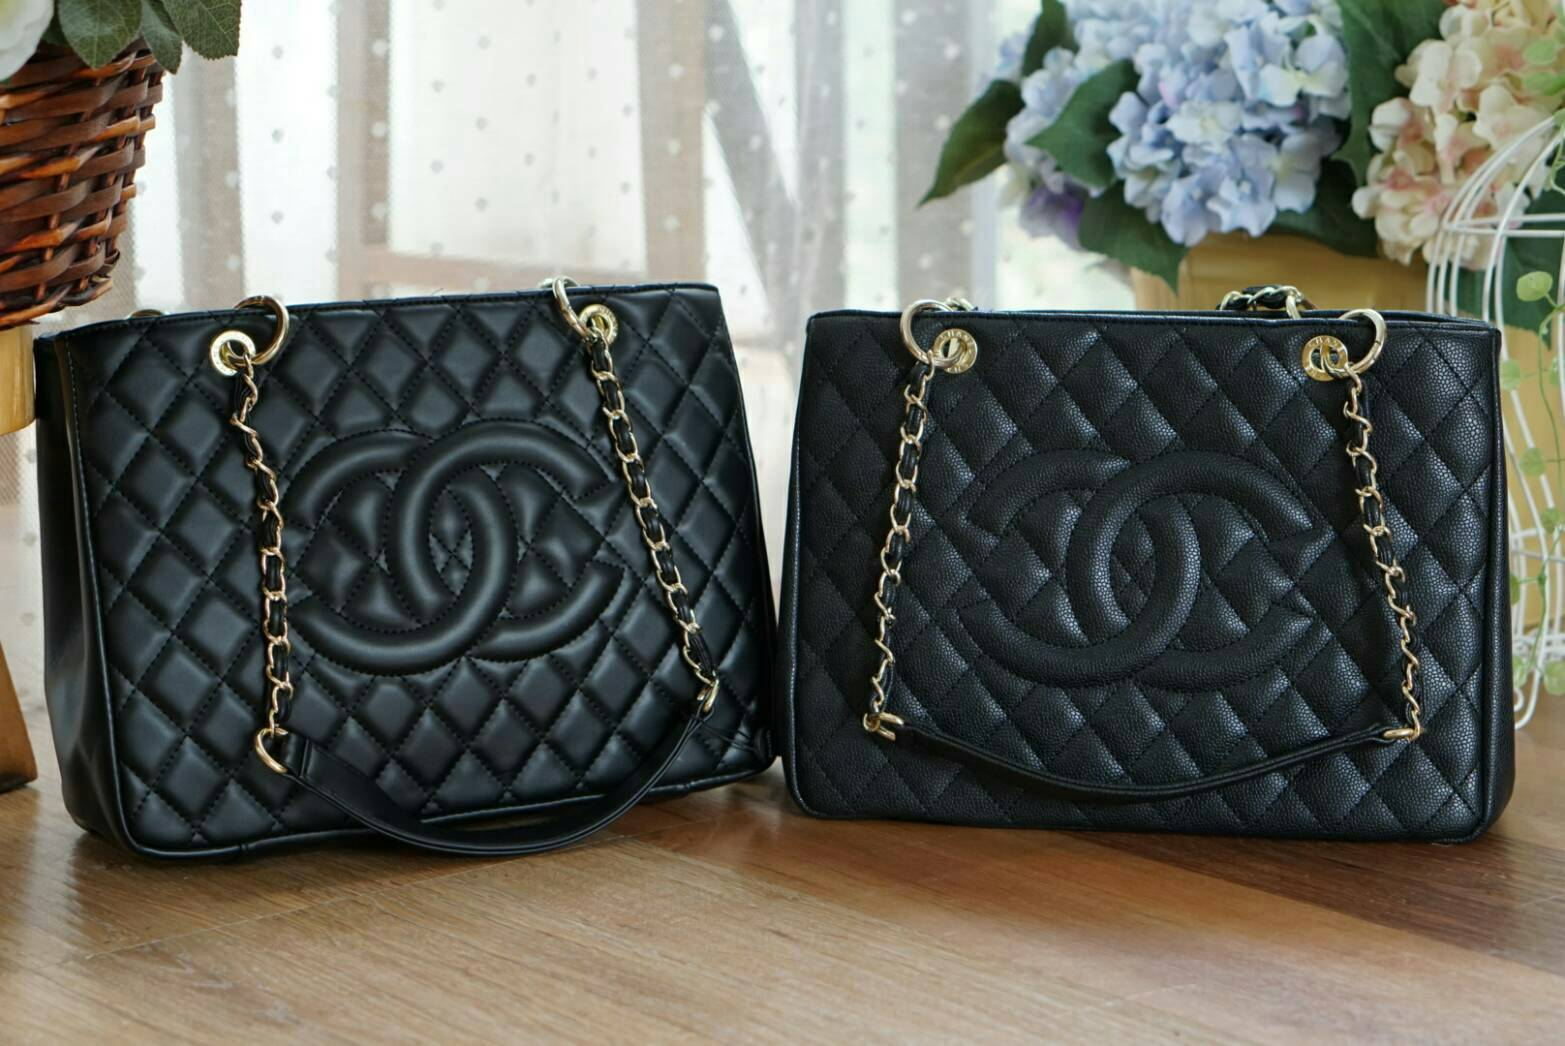 *Chanel Grand Shopping Tote Bag*